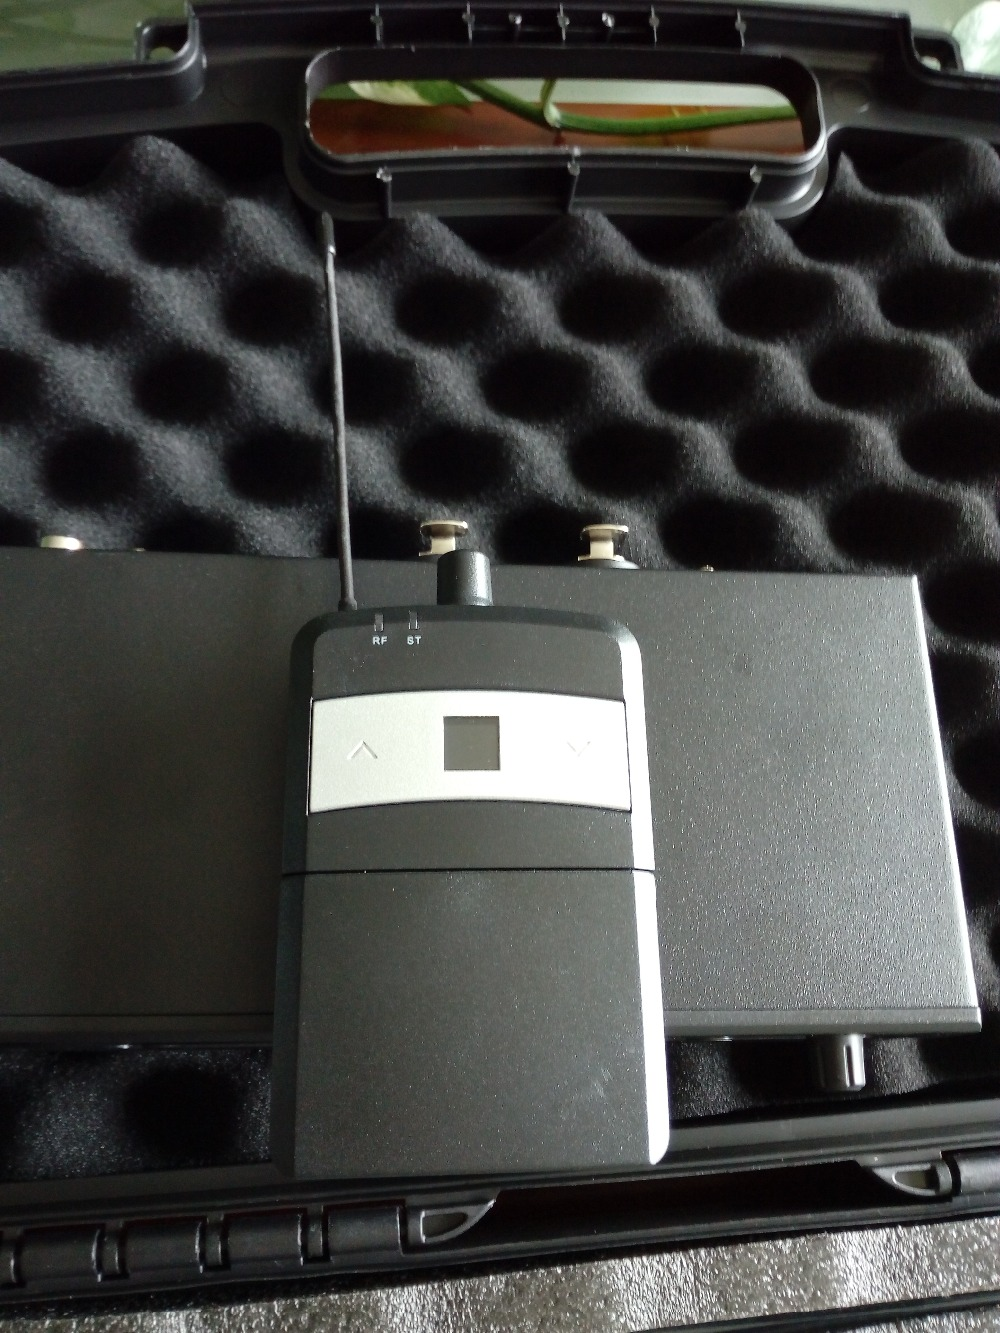 stereo one channel good quality 655-679MHZ or 838-865MHz in ear monitor system Stereo Professional / Wireless IEM